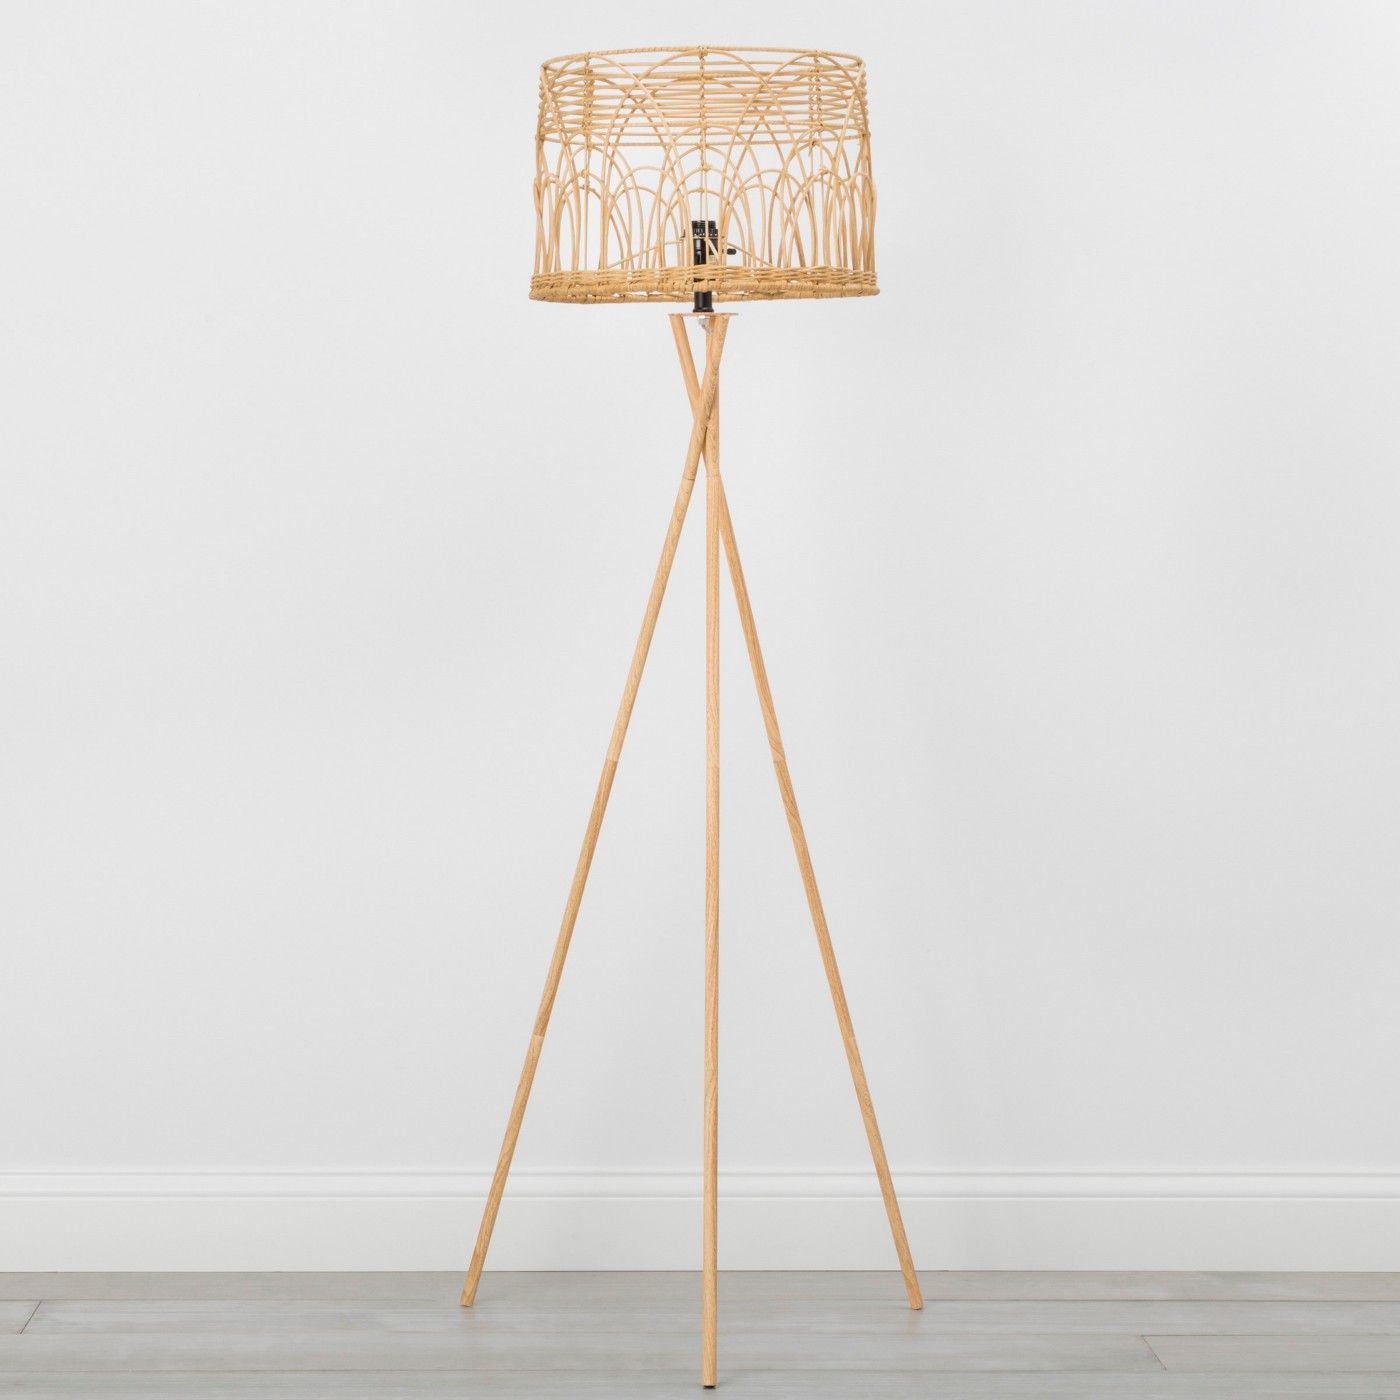 Rattan Tripod Floor Lamp Natural Opalhouse Image 1 Of 4 Target Floor Lamps Rattan Floor Lamp Floor Lamp Bedroom